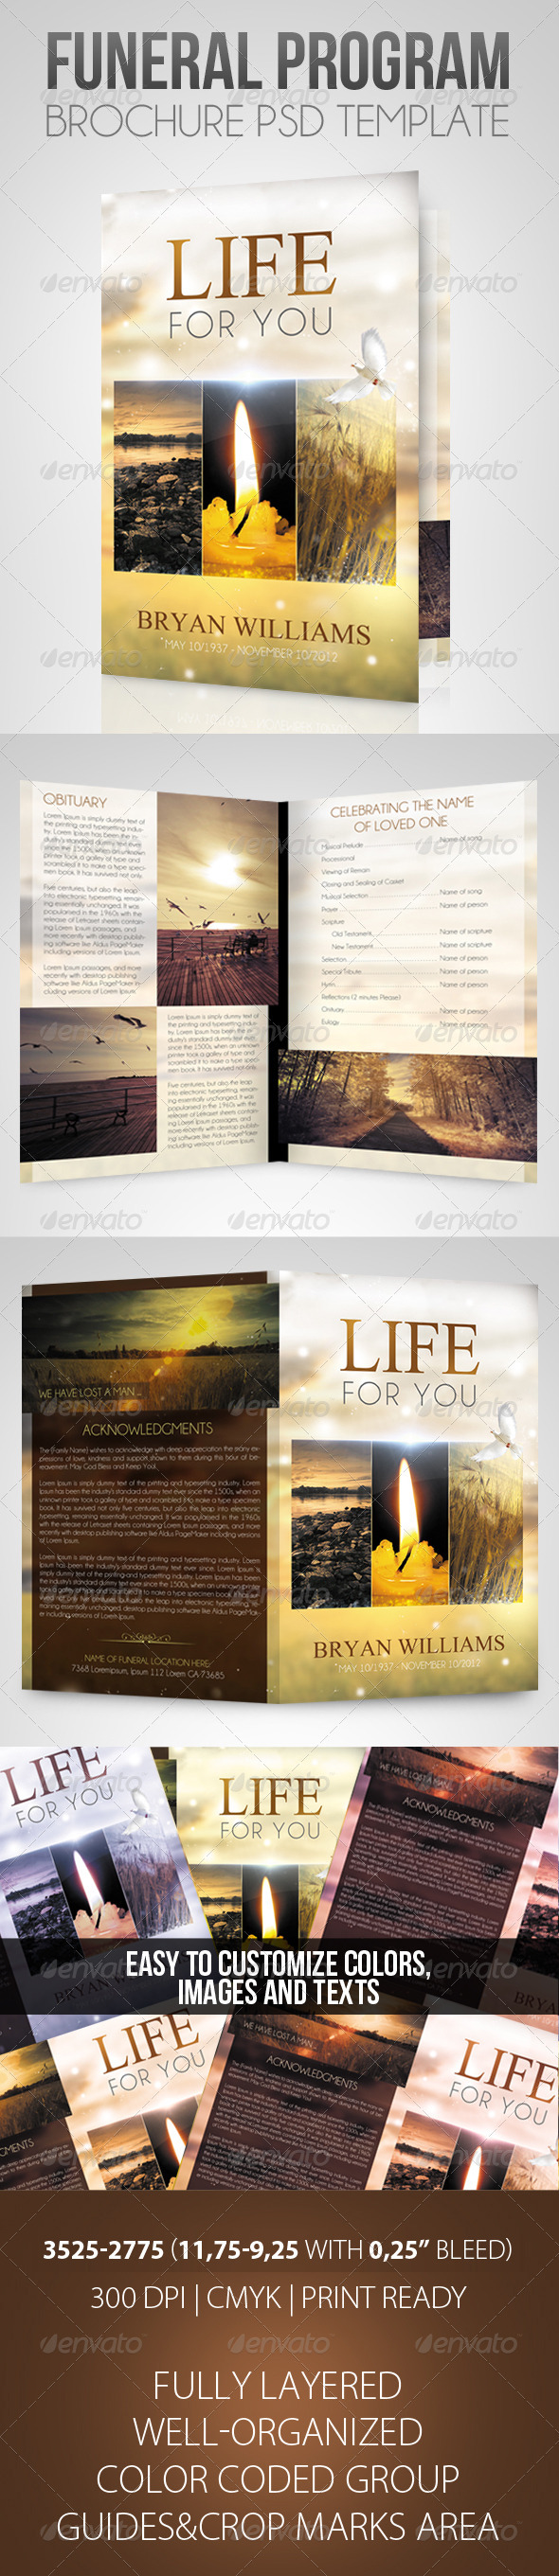 Celebration of life service program brochure template for Program brochure templates